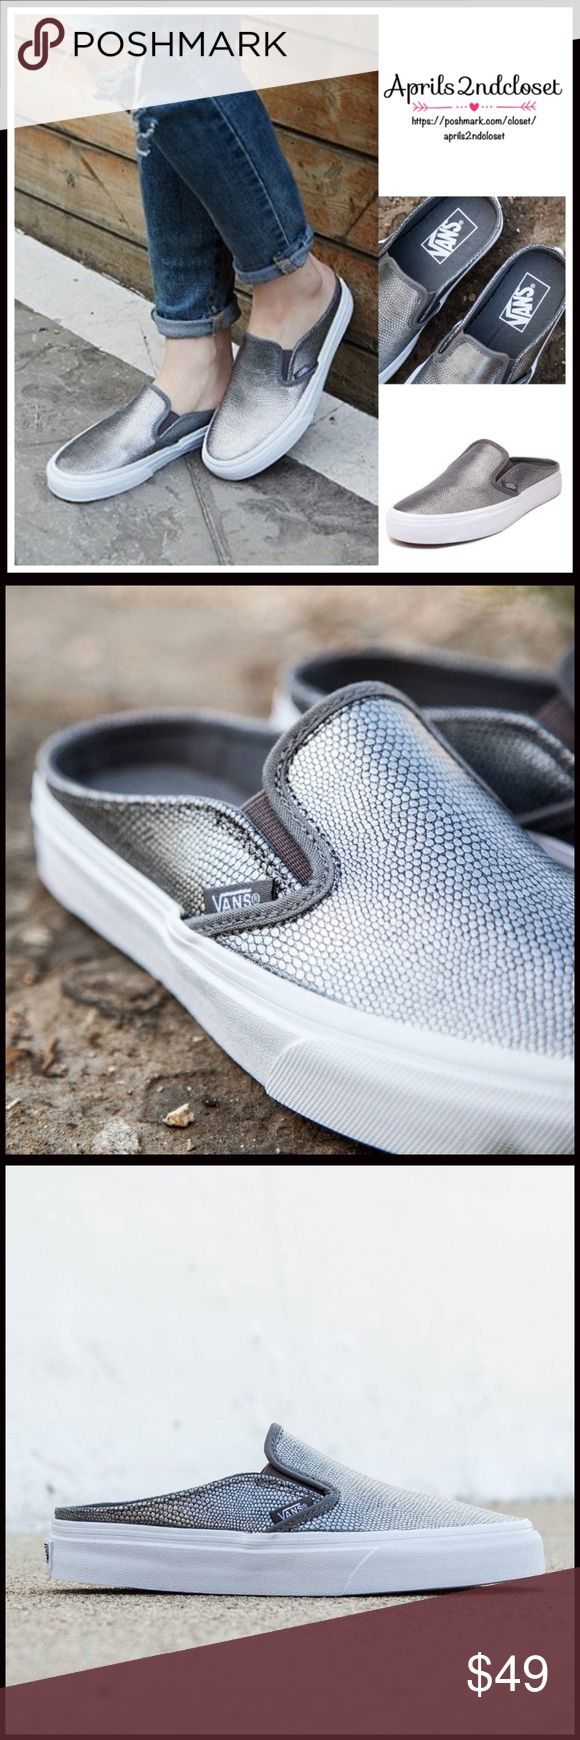 """VANS Sneakers Slip Ons Flats VANS Sneakers Slip Ons Flats NEW WITH TAGS RETAIL PRICE: $60   * Slip-on style & round toe, mule silhouette  * Dual goring at inset  * Genuine leather  * Logo detail  * Non-marking low ballet flat 1"""" rubber soles  * Runs small, order 1/2 size up   Fabric:Genuine leather & textile upper, rubber sole  Color: Grey, True white leatherItem: flatform No Trades ✅ Offers Considered*✅ *Please use the blue 'offer' button to submit an offer. Vans Shoes Sneakers"""